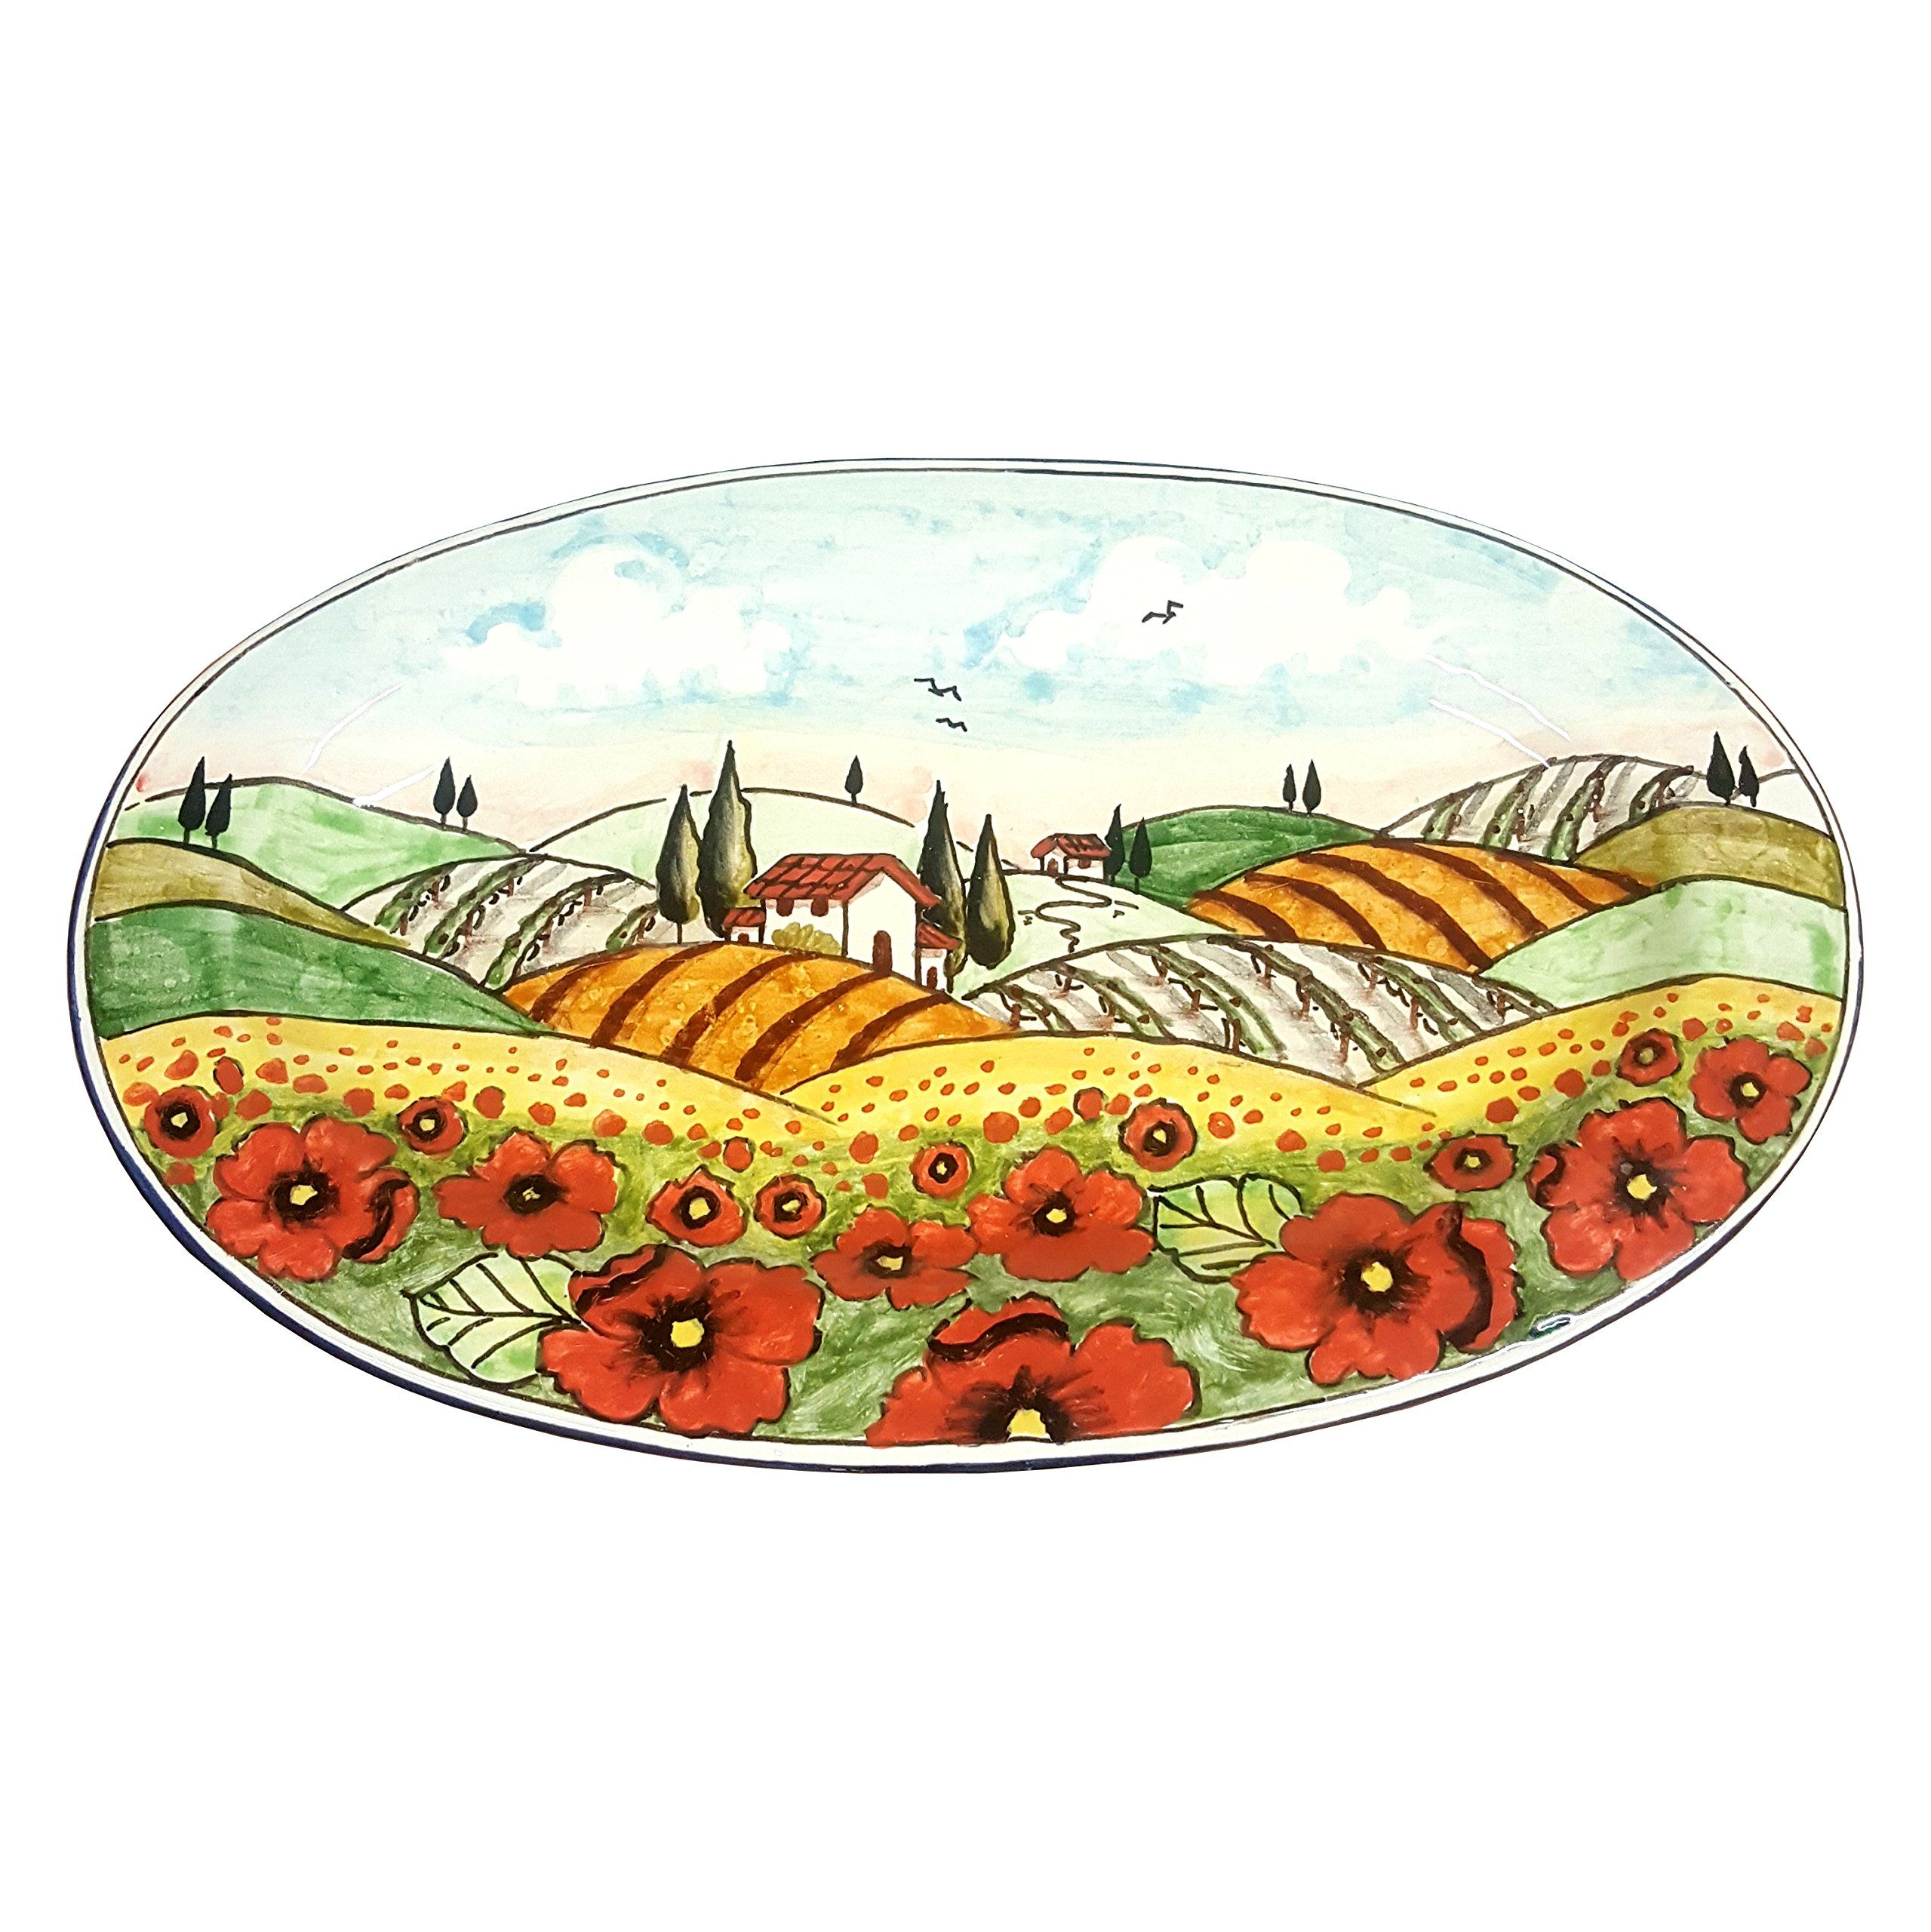 Italian Ceramic Art Pottery Plate Serving Tray Hand Painted Decorated Poppies Landscape Tuscan Made in ITALY CERAMICHE DARTE PARRINI